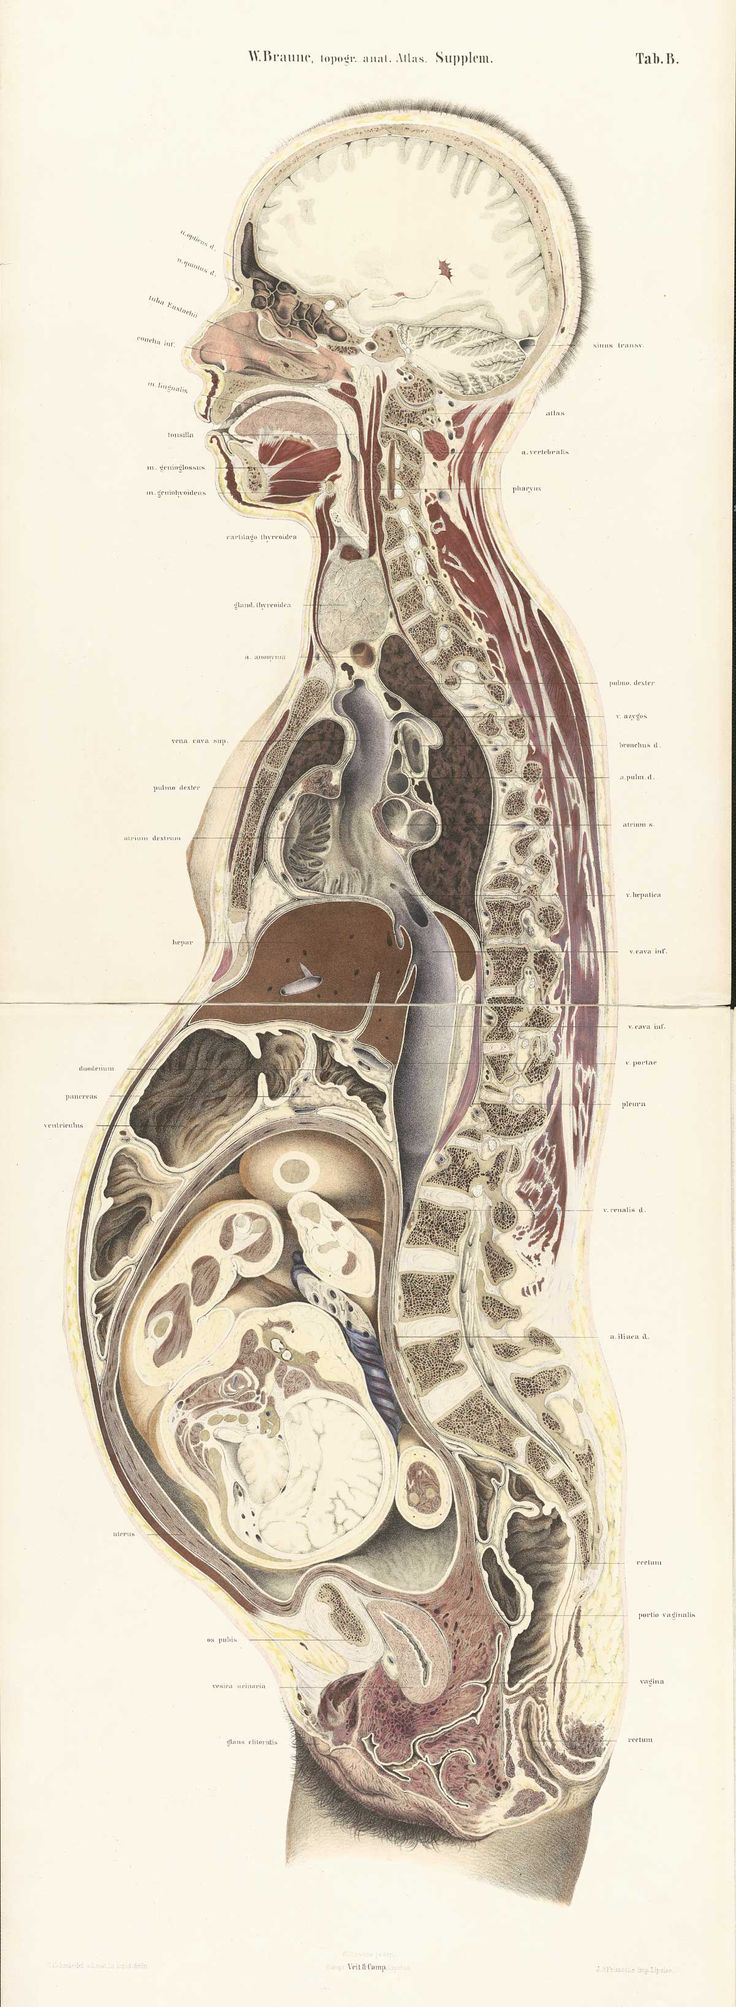 247 best Anatomy images on Pinterest | Anatomy reference, Human ...